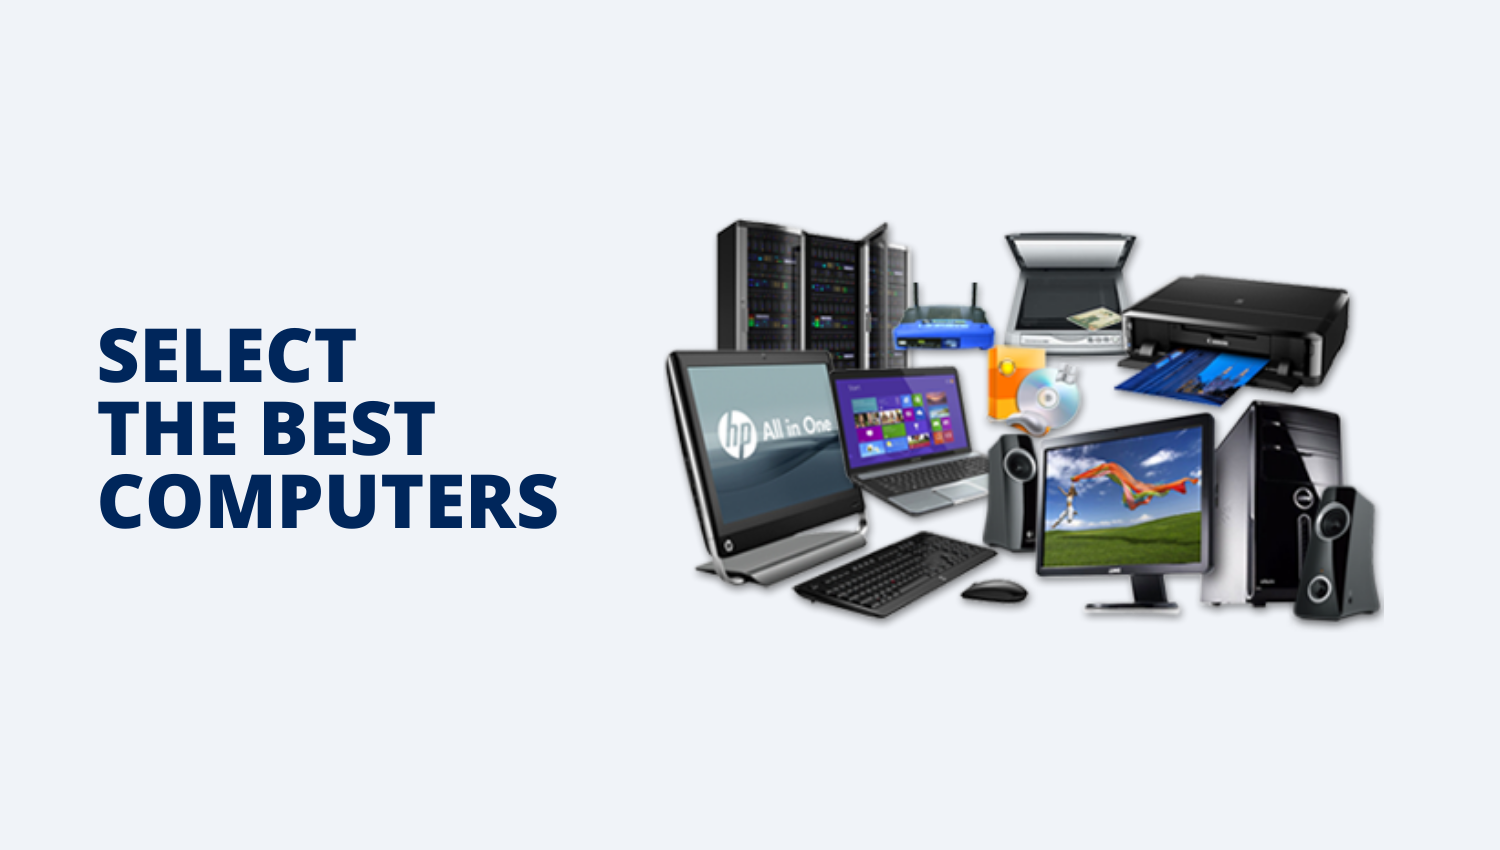 SELECT-THE-BEST-COMPUTERS-Tiacotech